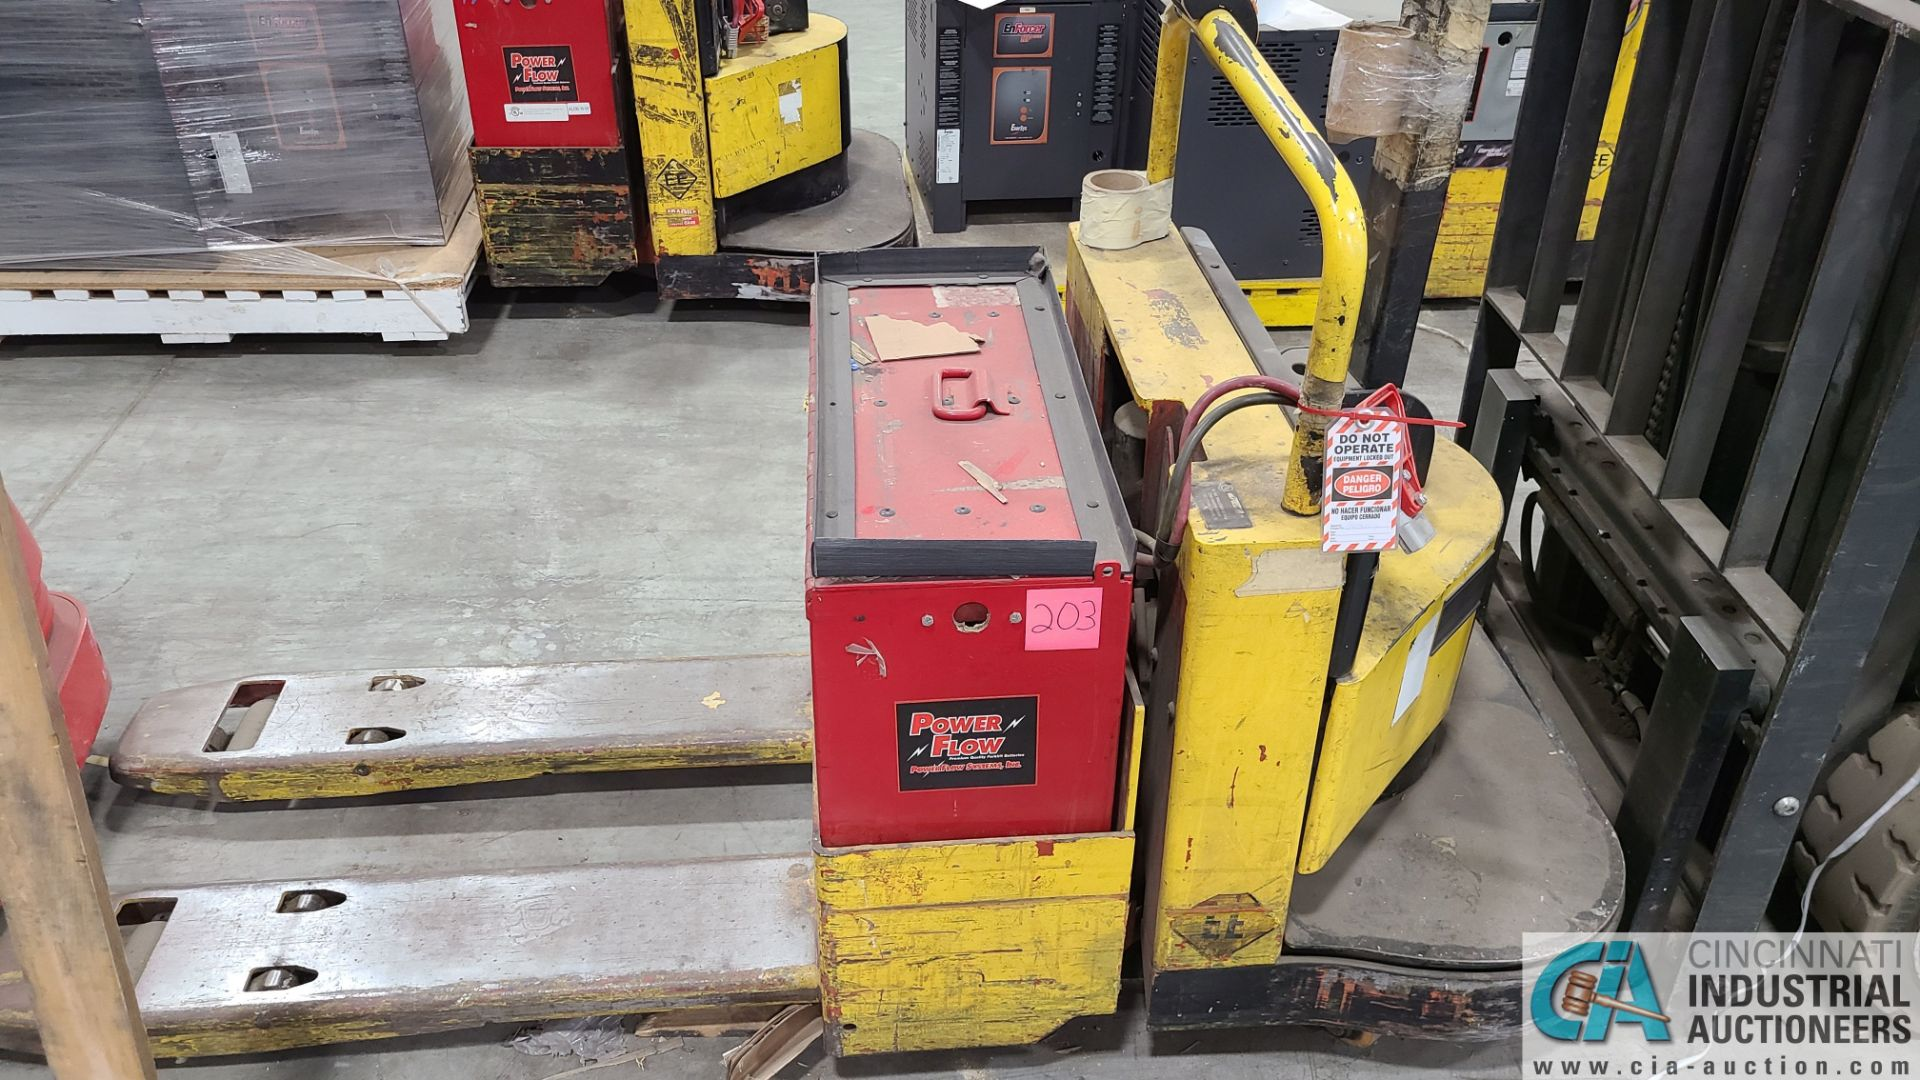 PRIME MODEL HMX65 ELECTRIC PALLET TRUCK; S/N HMX6535055003, W/ BATTERY, 153 HOURS (2570 ORCHARD - Image 3 of 4